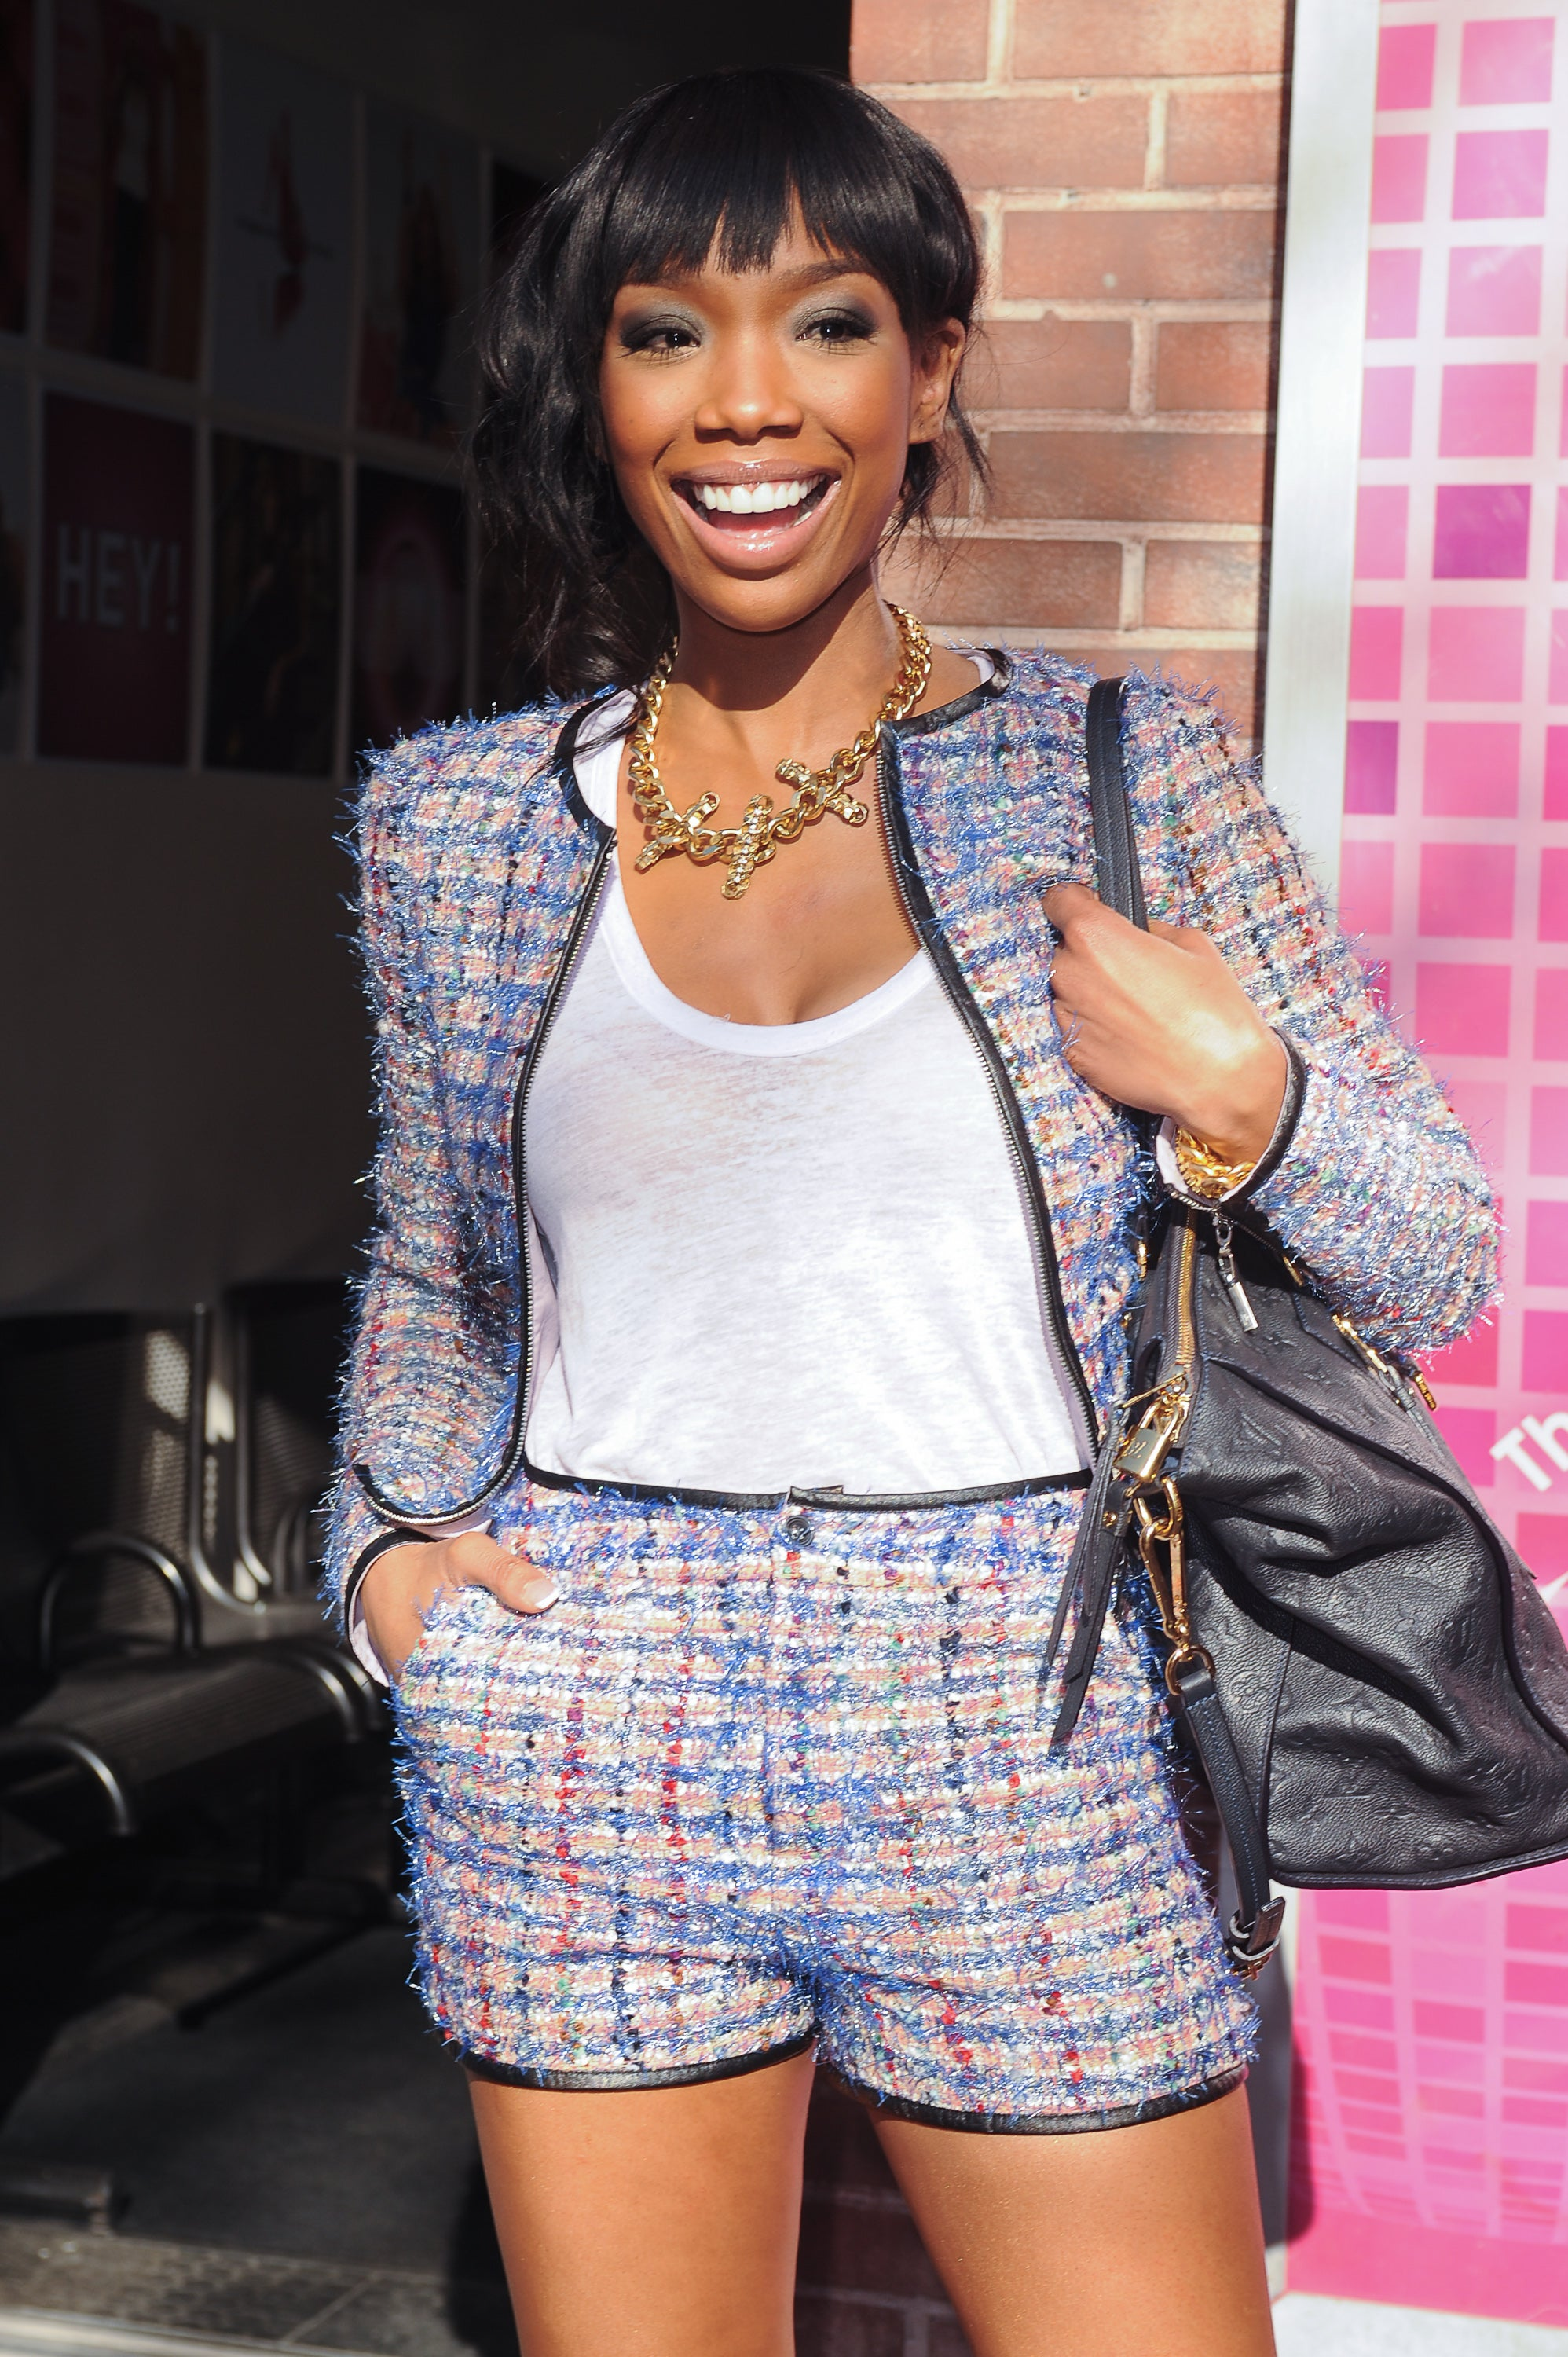 Brandy Calls Her 'Game' Character, 'That Hood Chick'